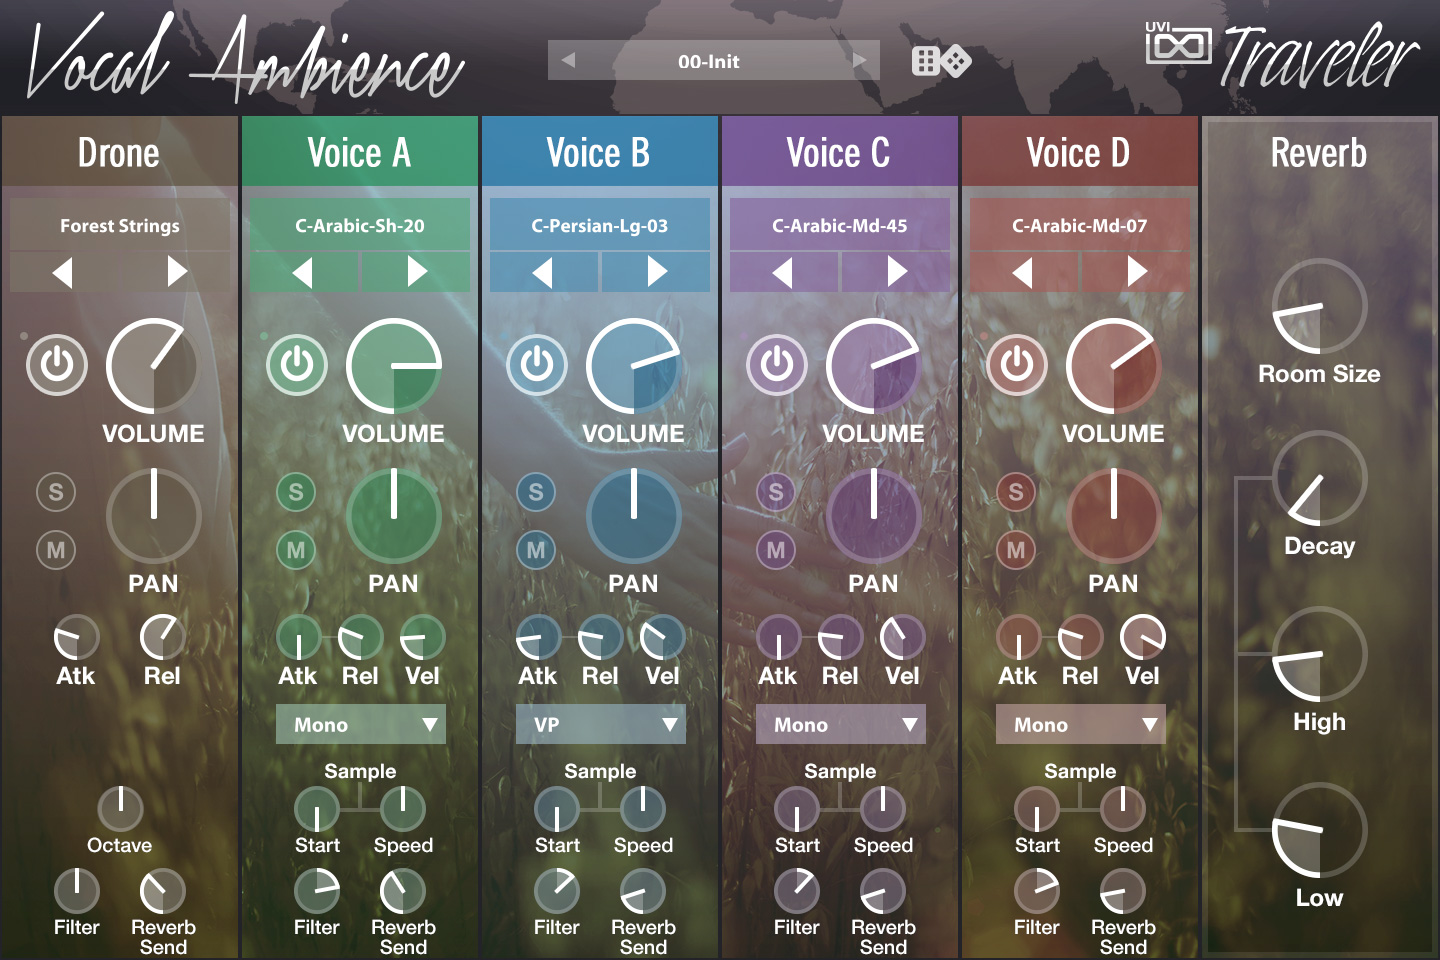 UVI world suite WS_GUI_Traveler_Vocal_Ambience.jpg